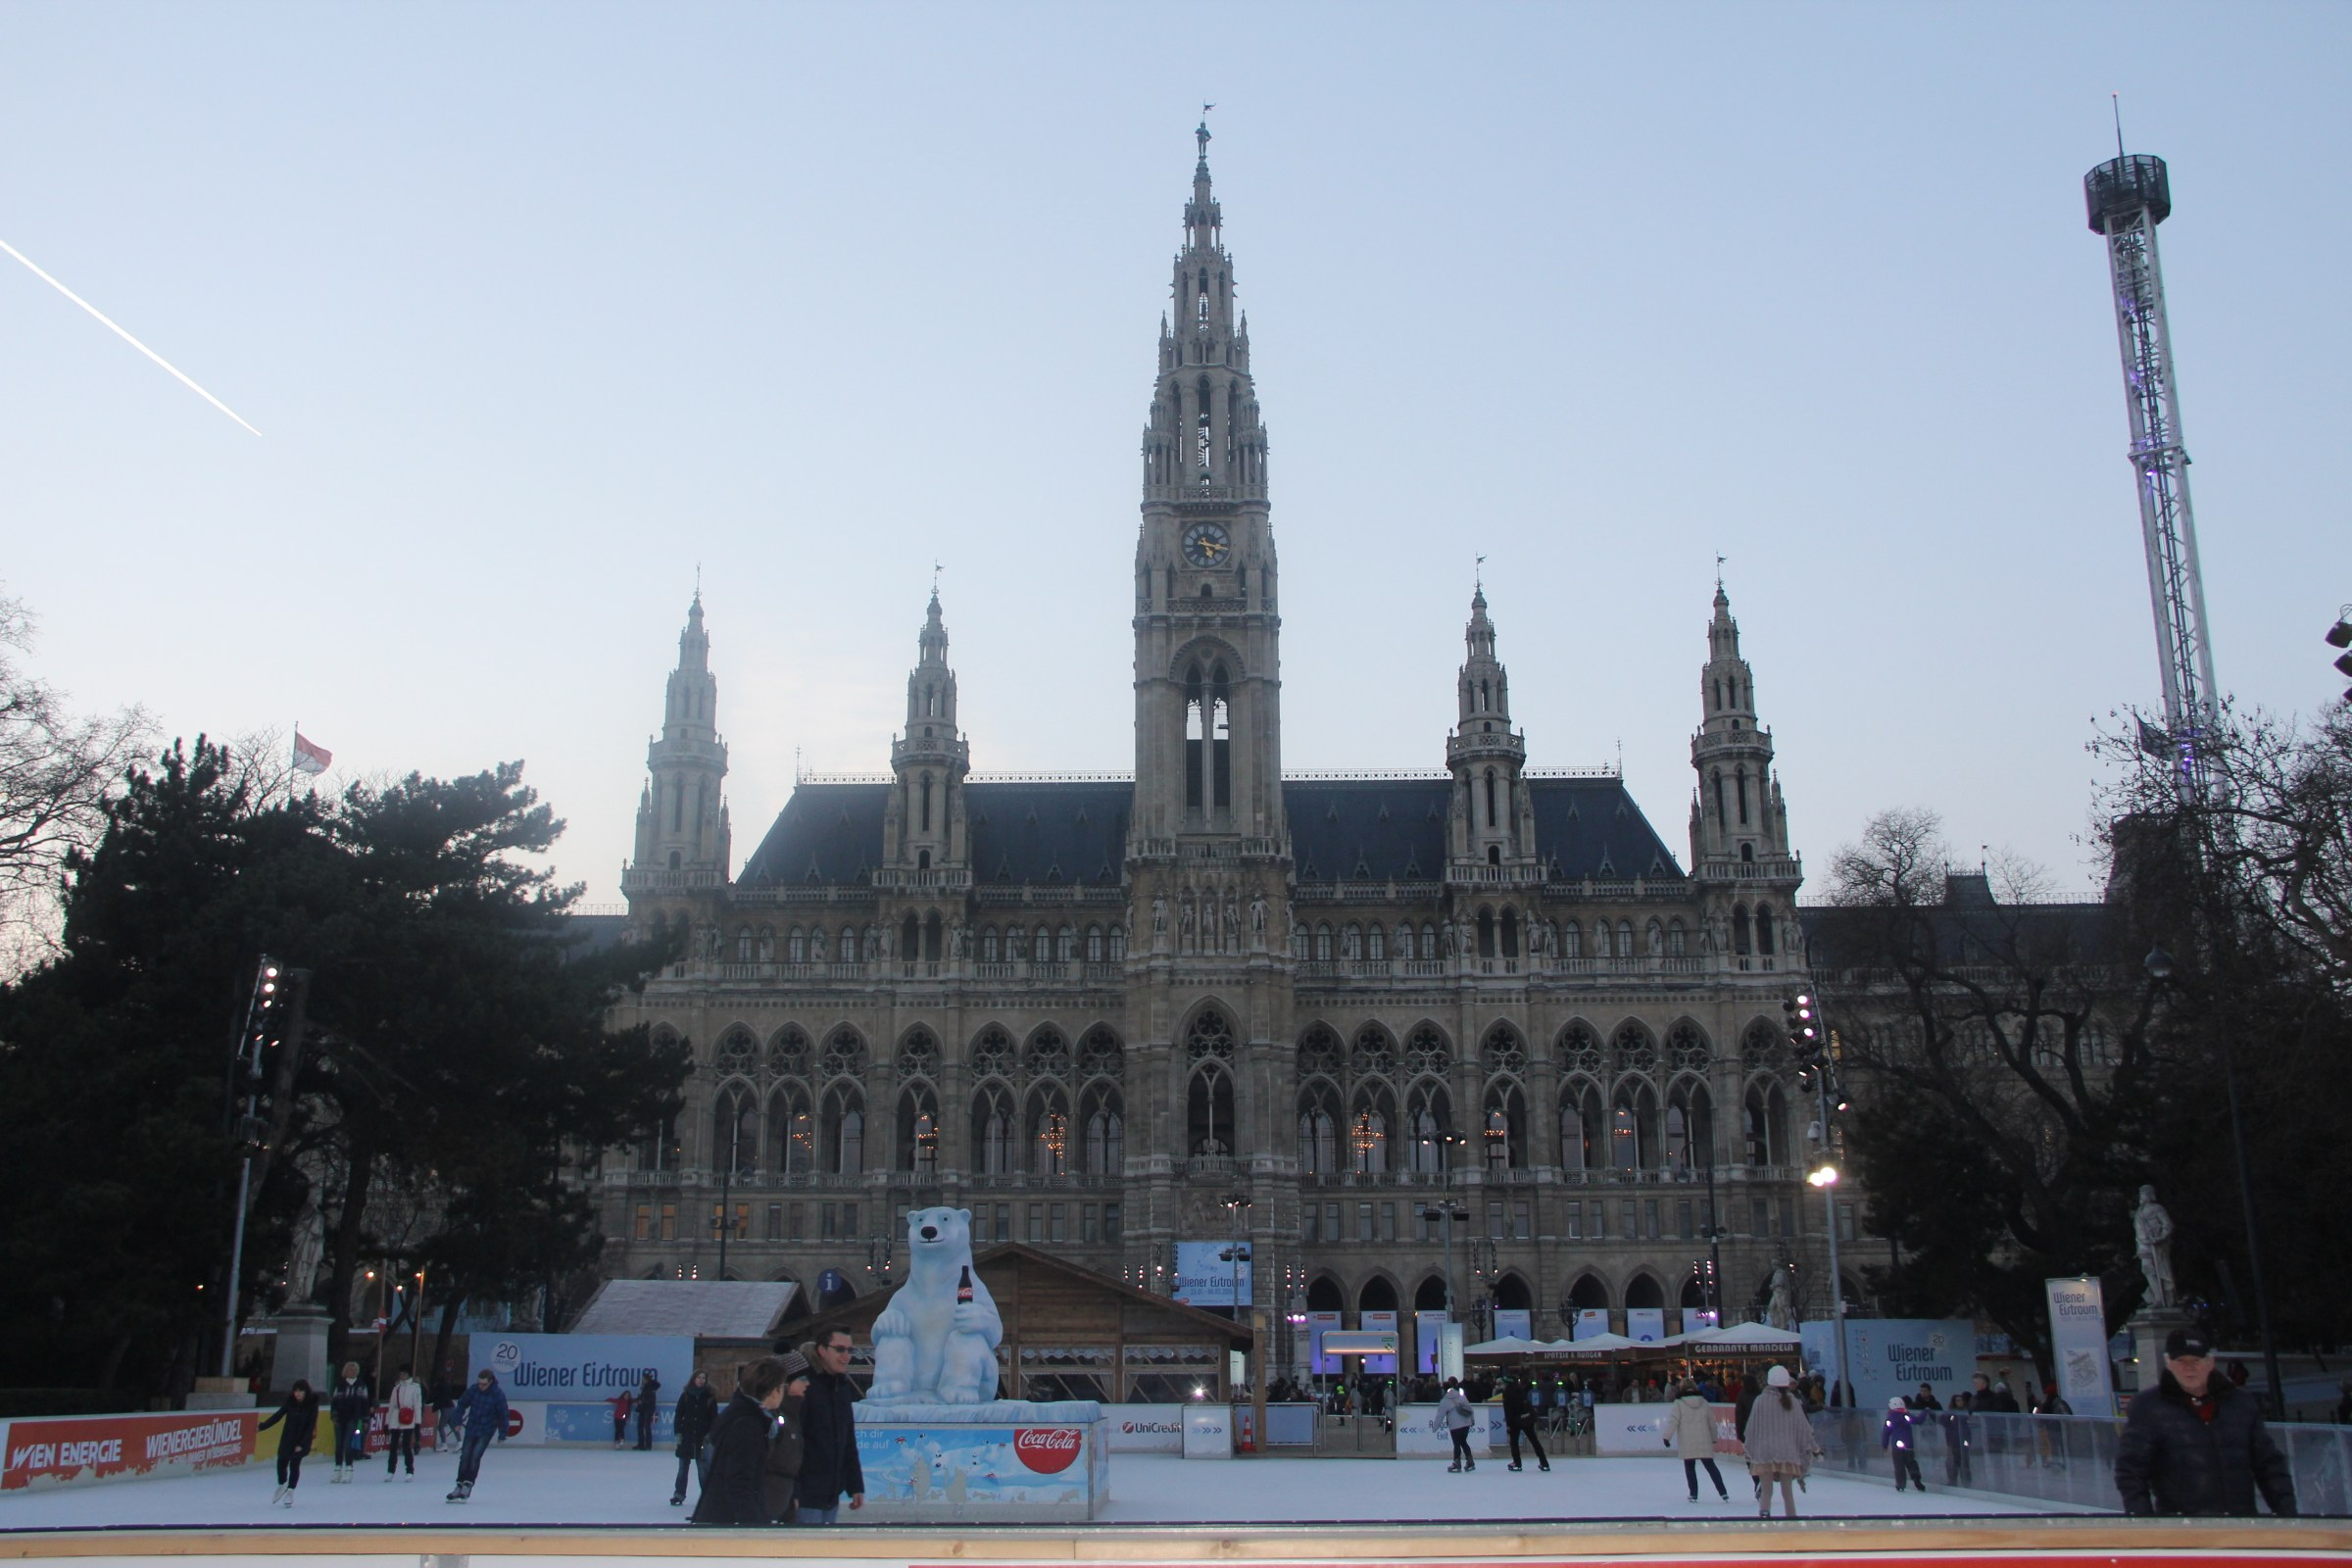 City Hall of Vienna